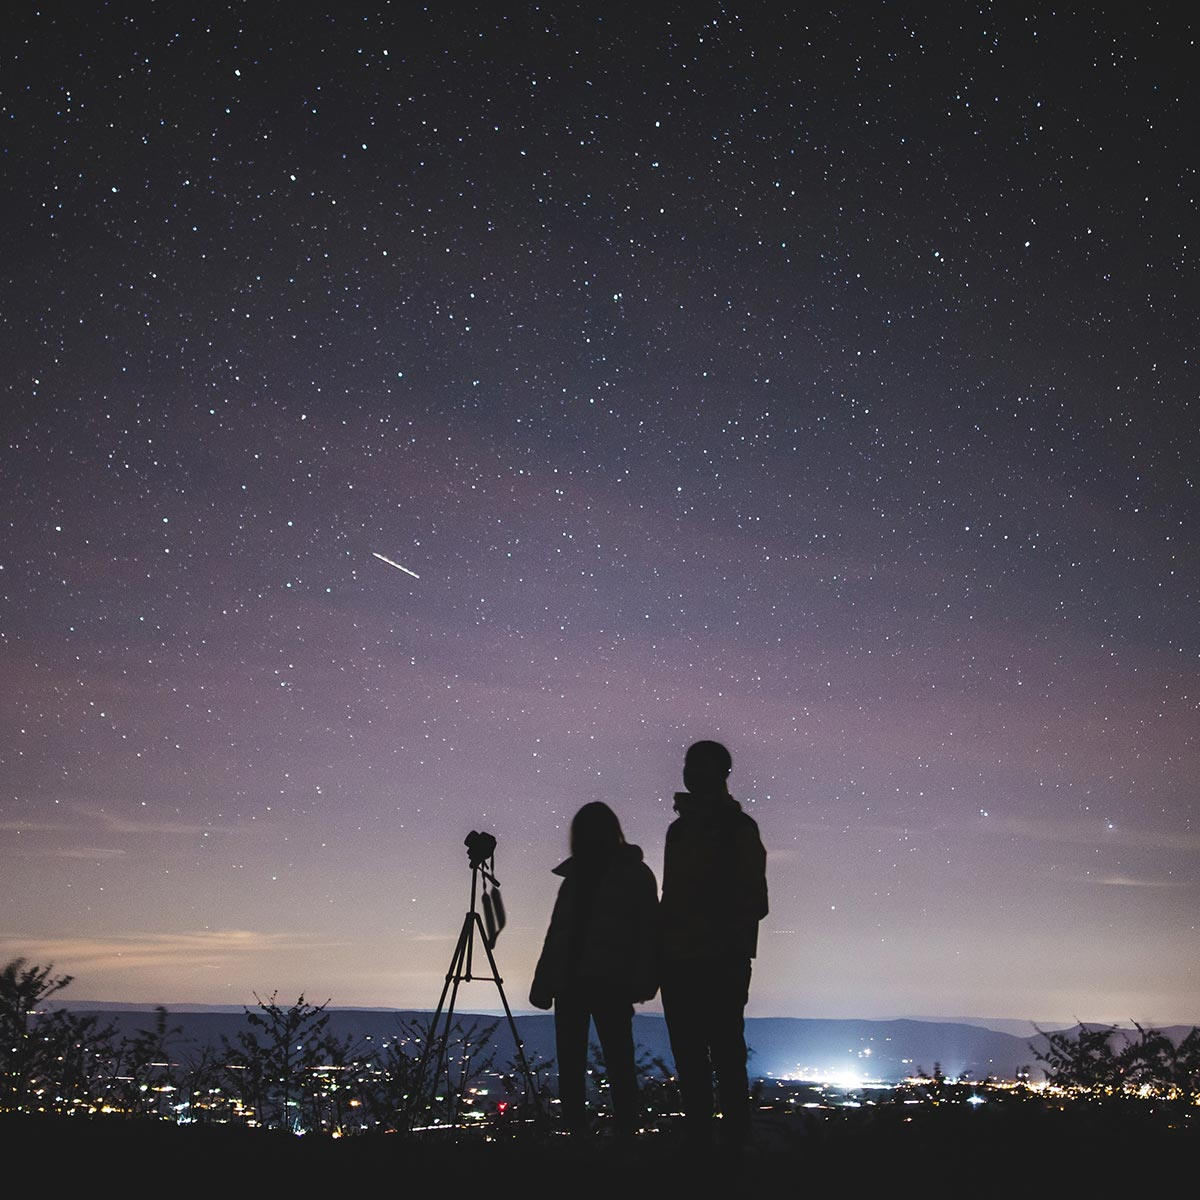 Two people with a telescope looking at the night sky